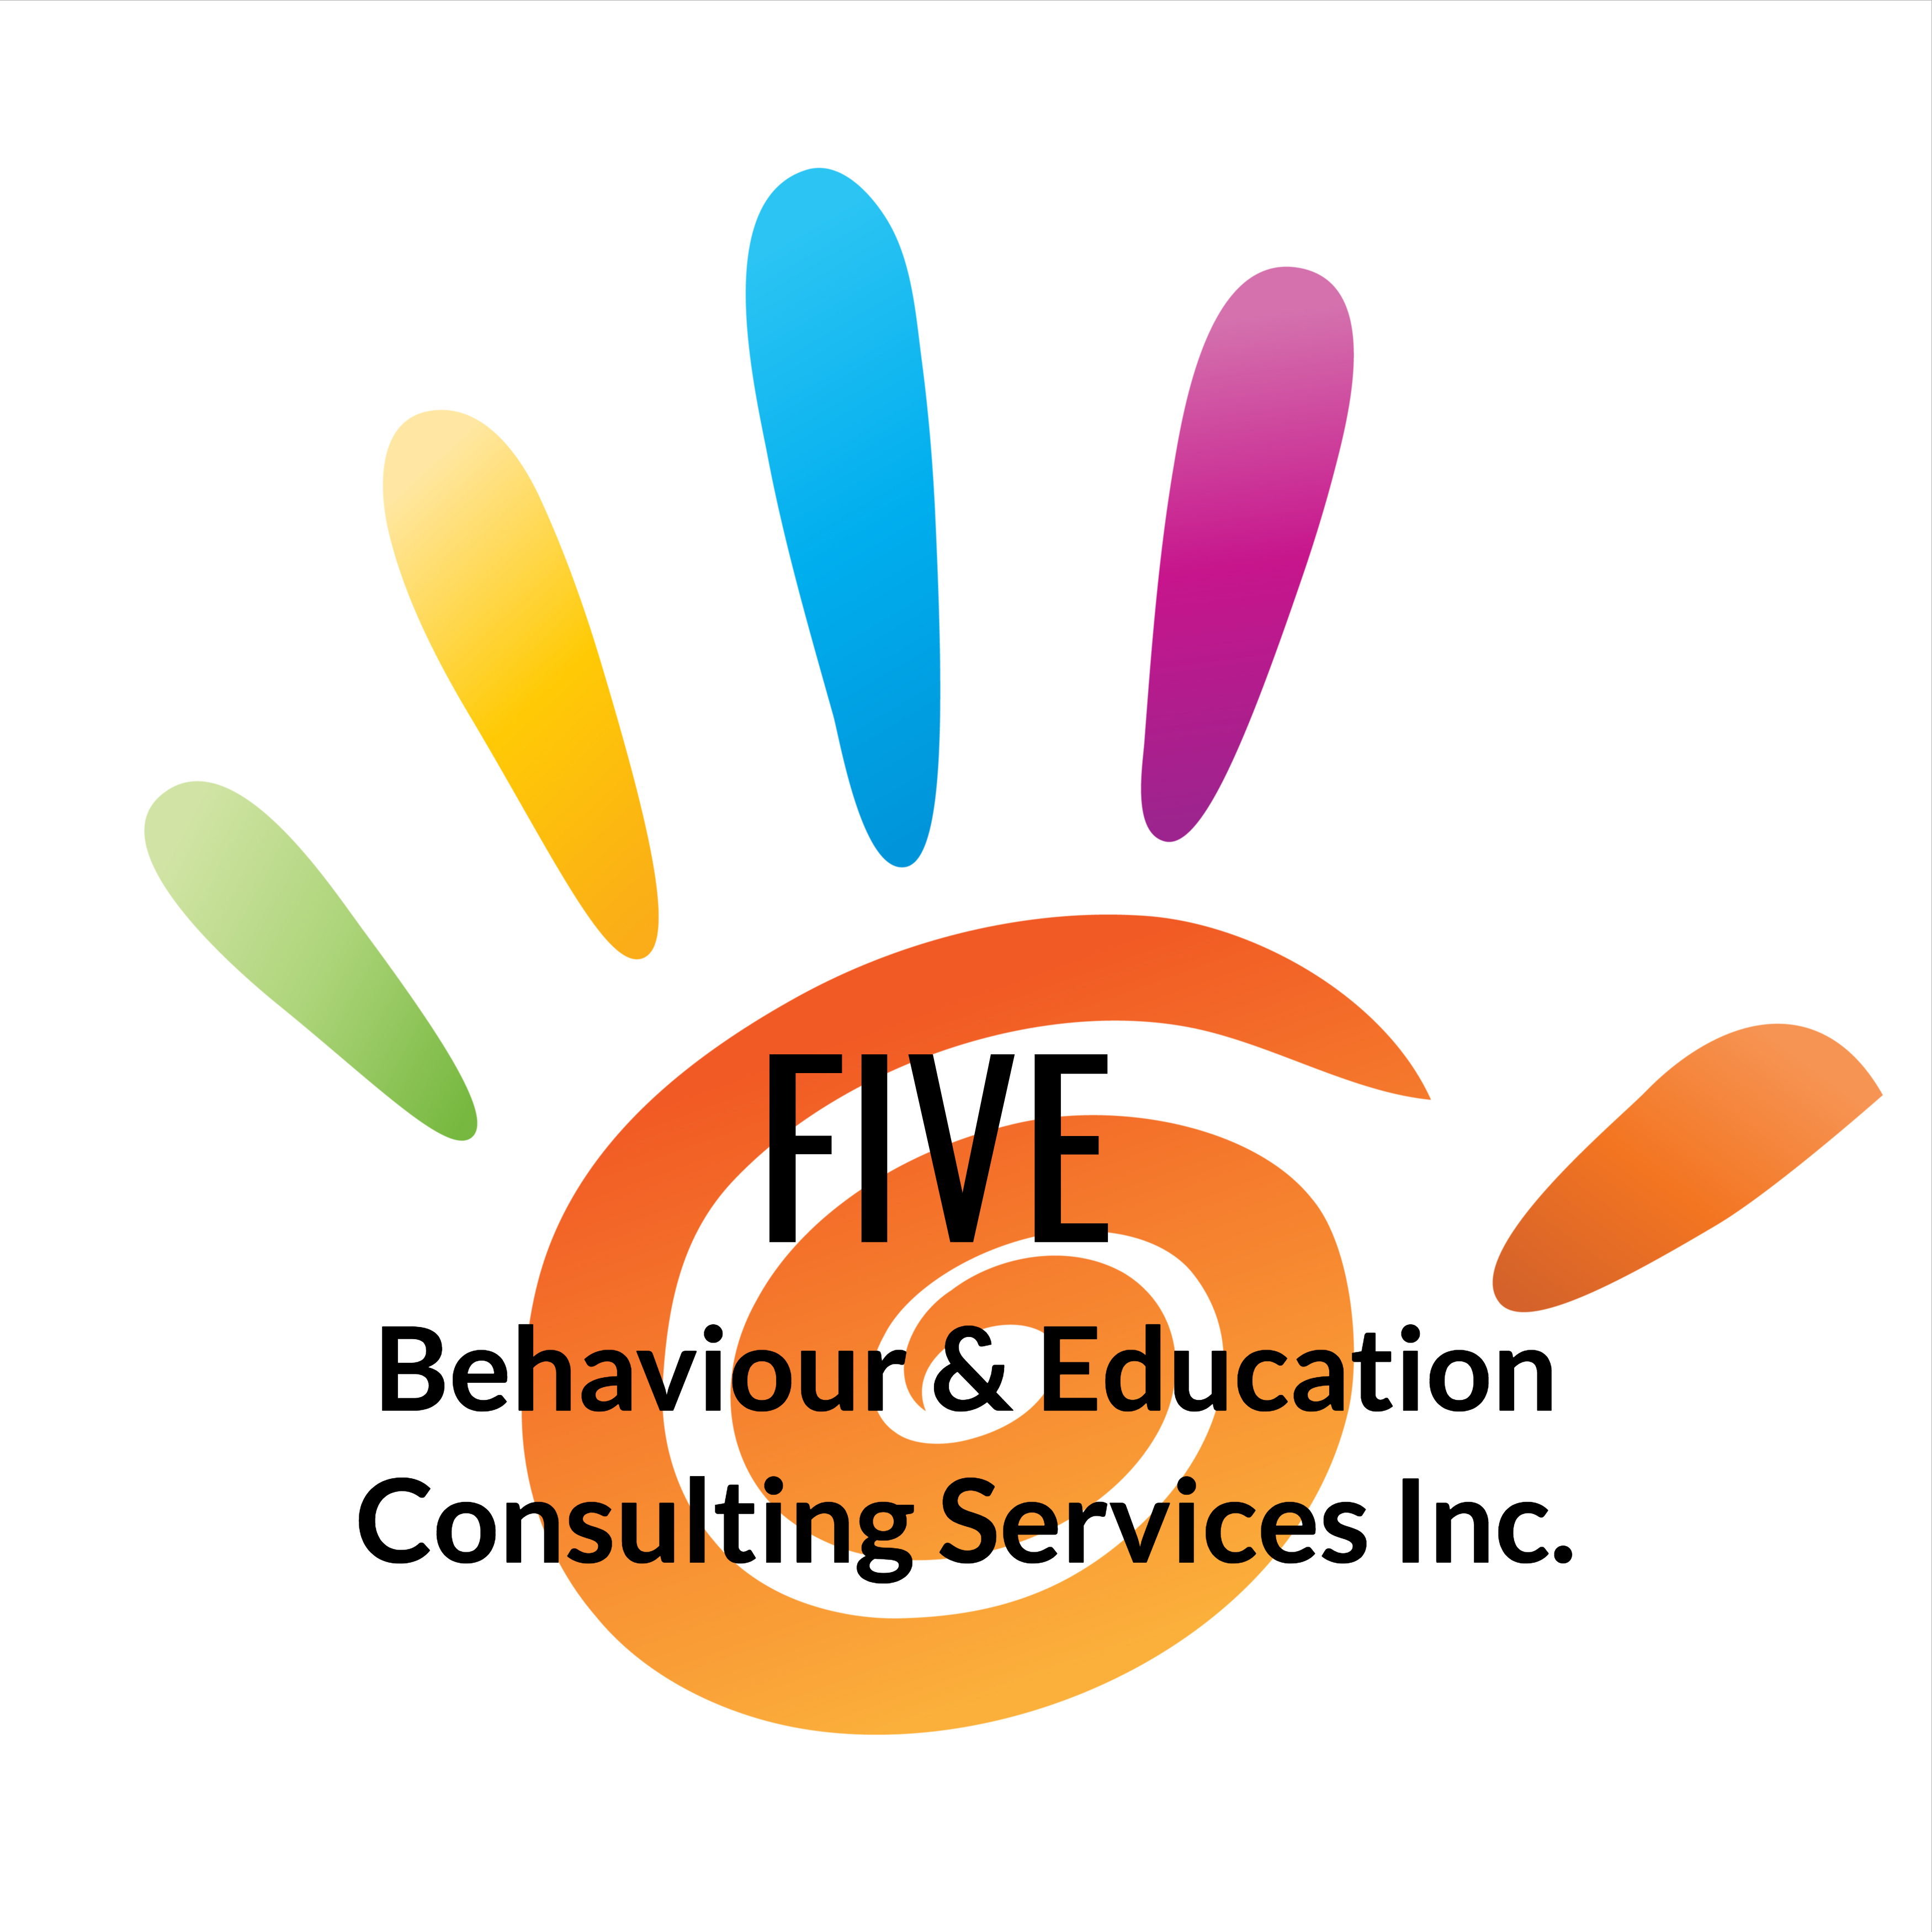 Five Behavior